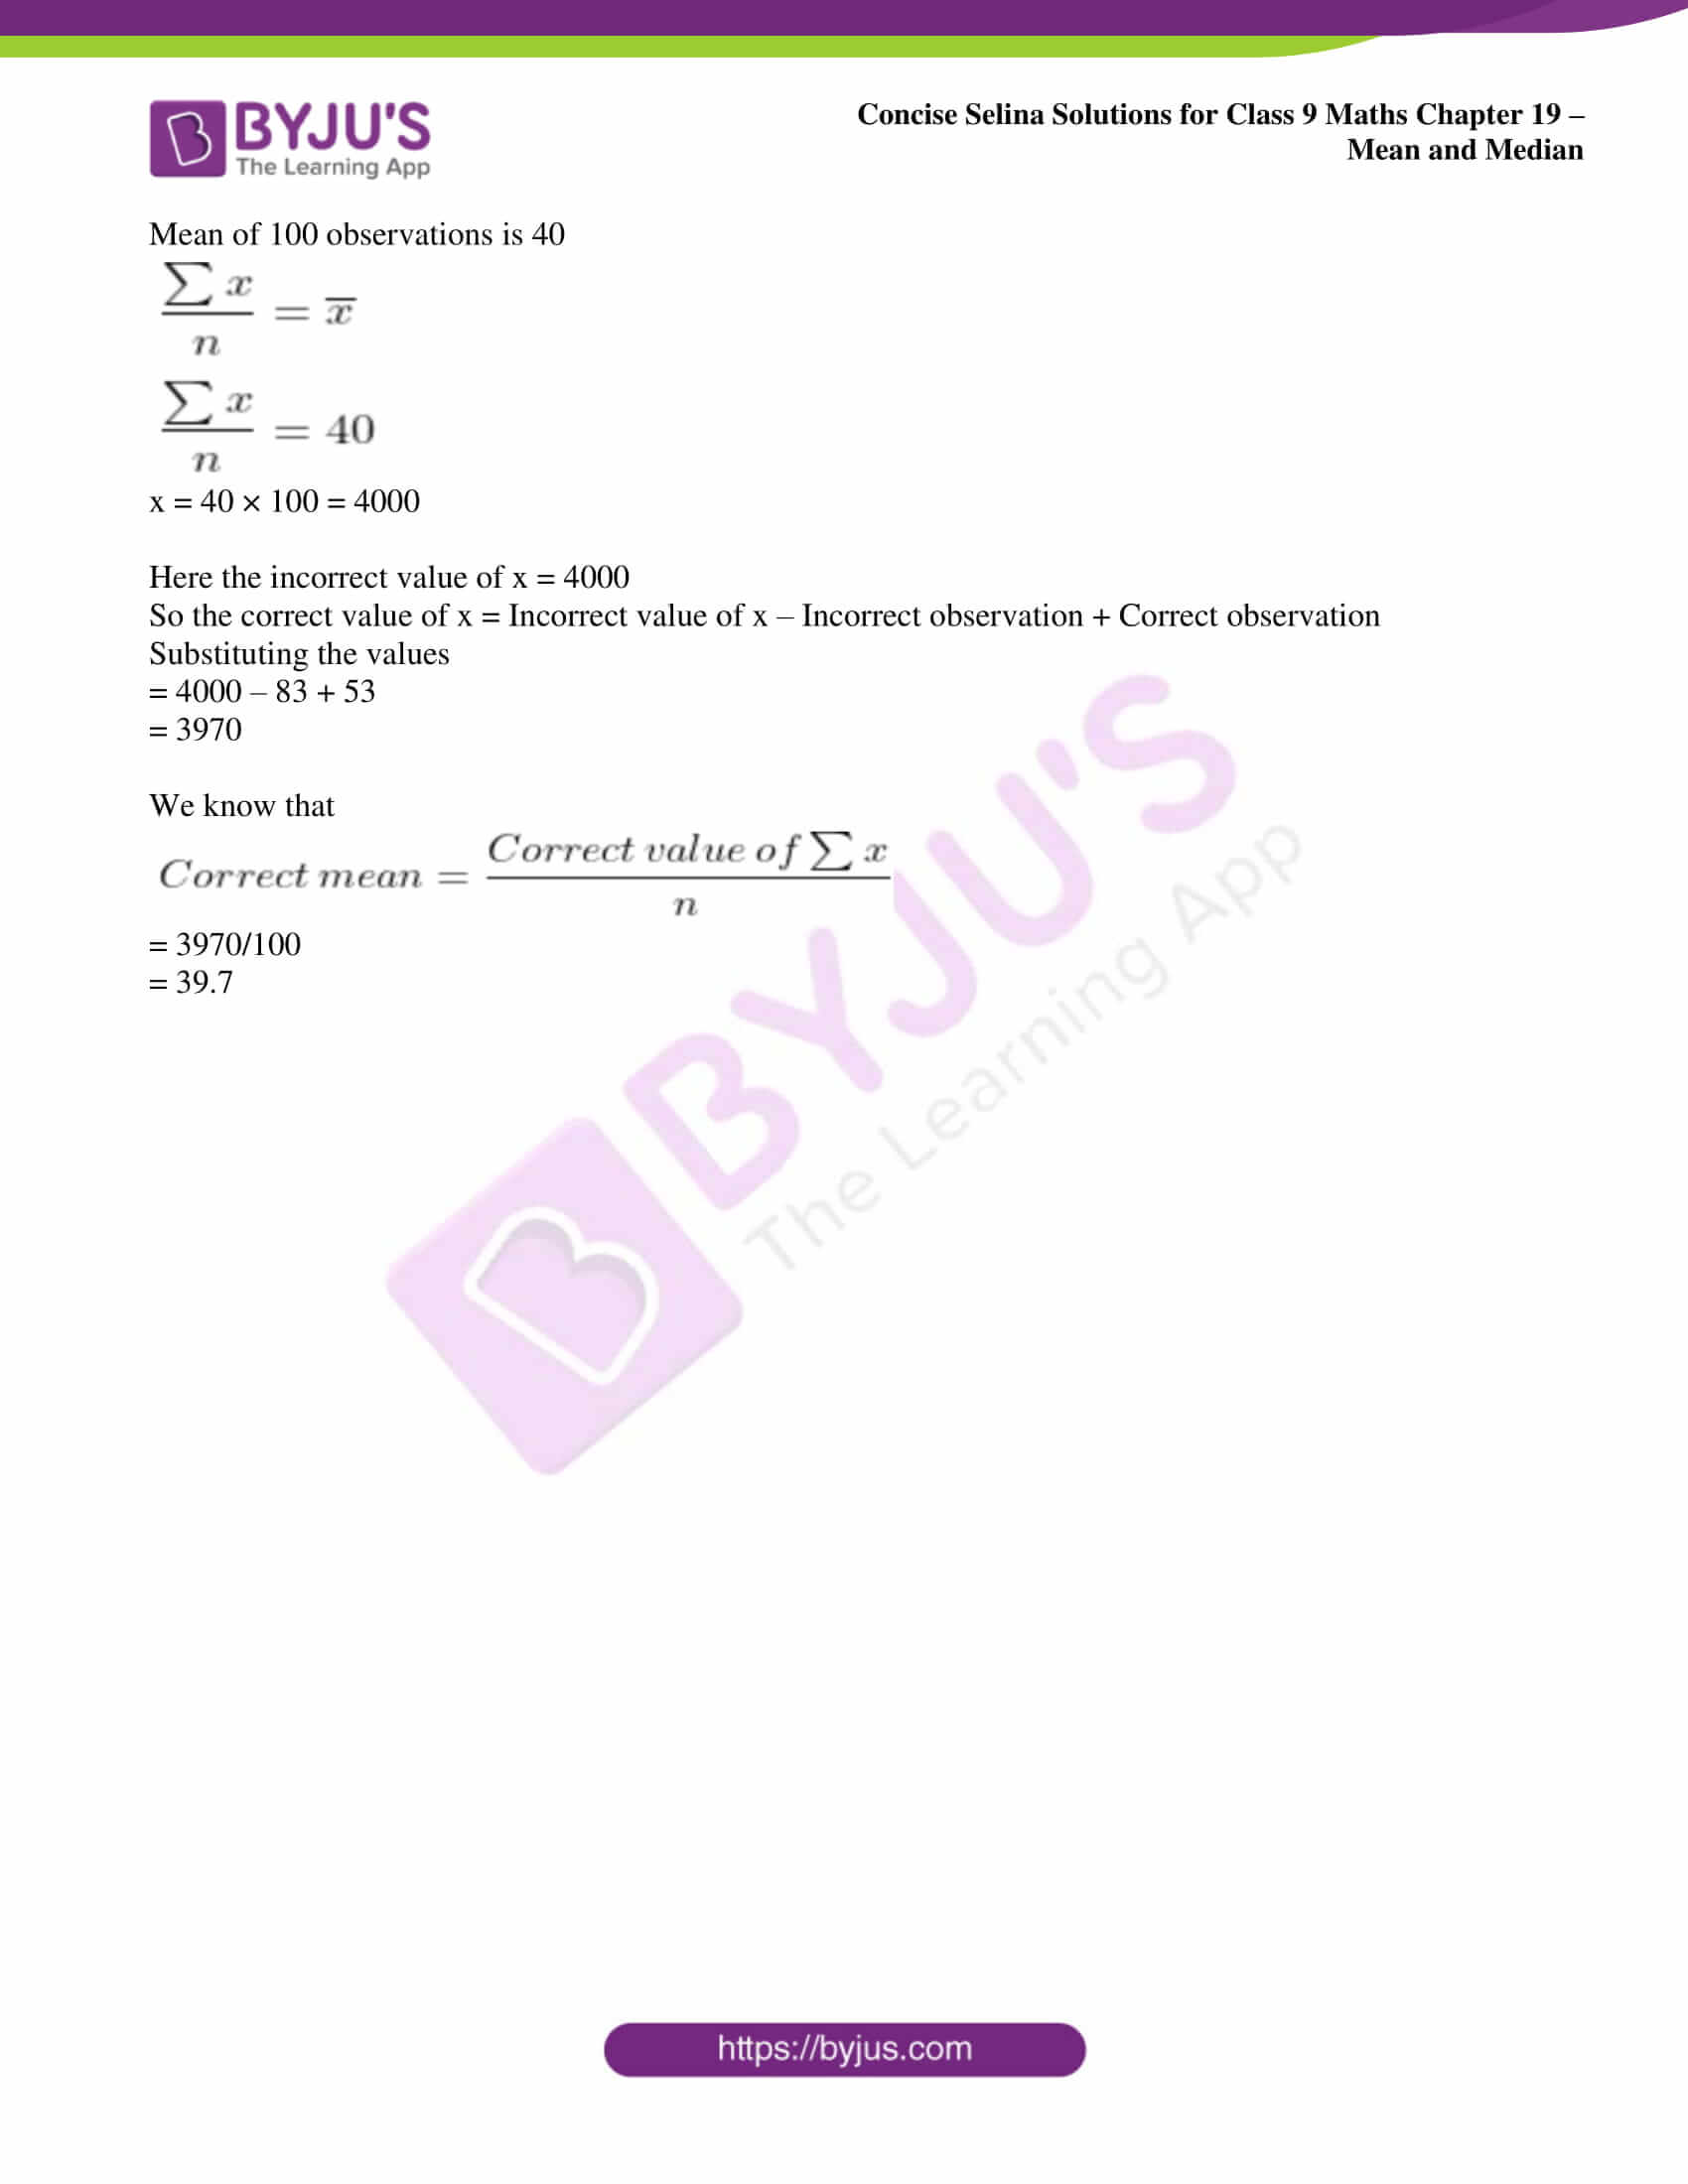 icse class 9 maths may10 selina solutions chapter 19 mean and median 05